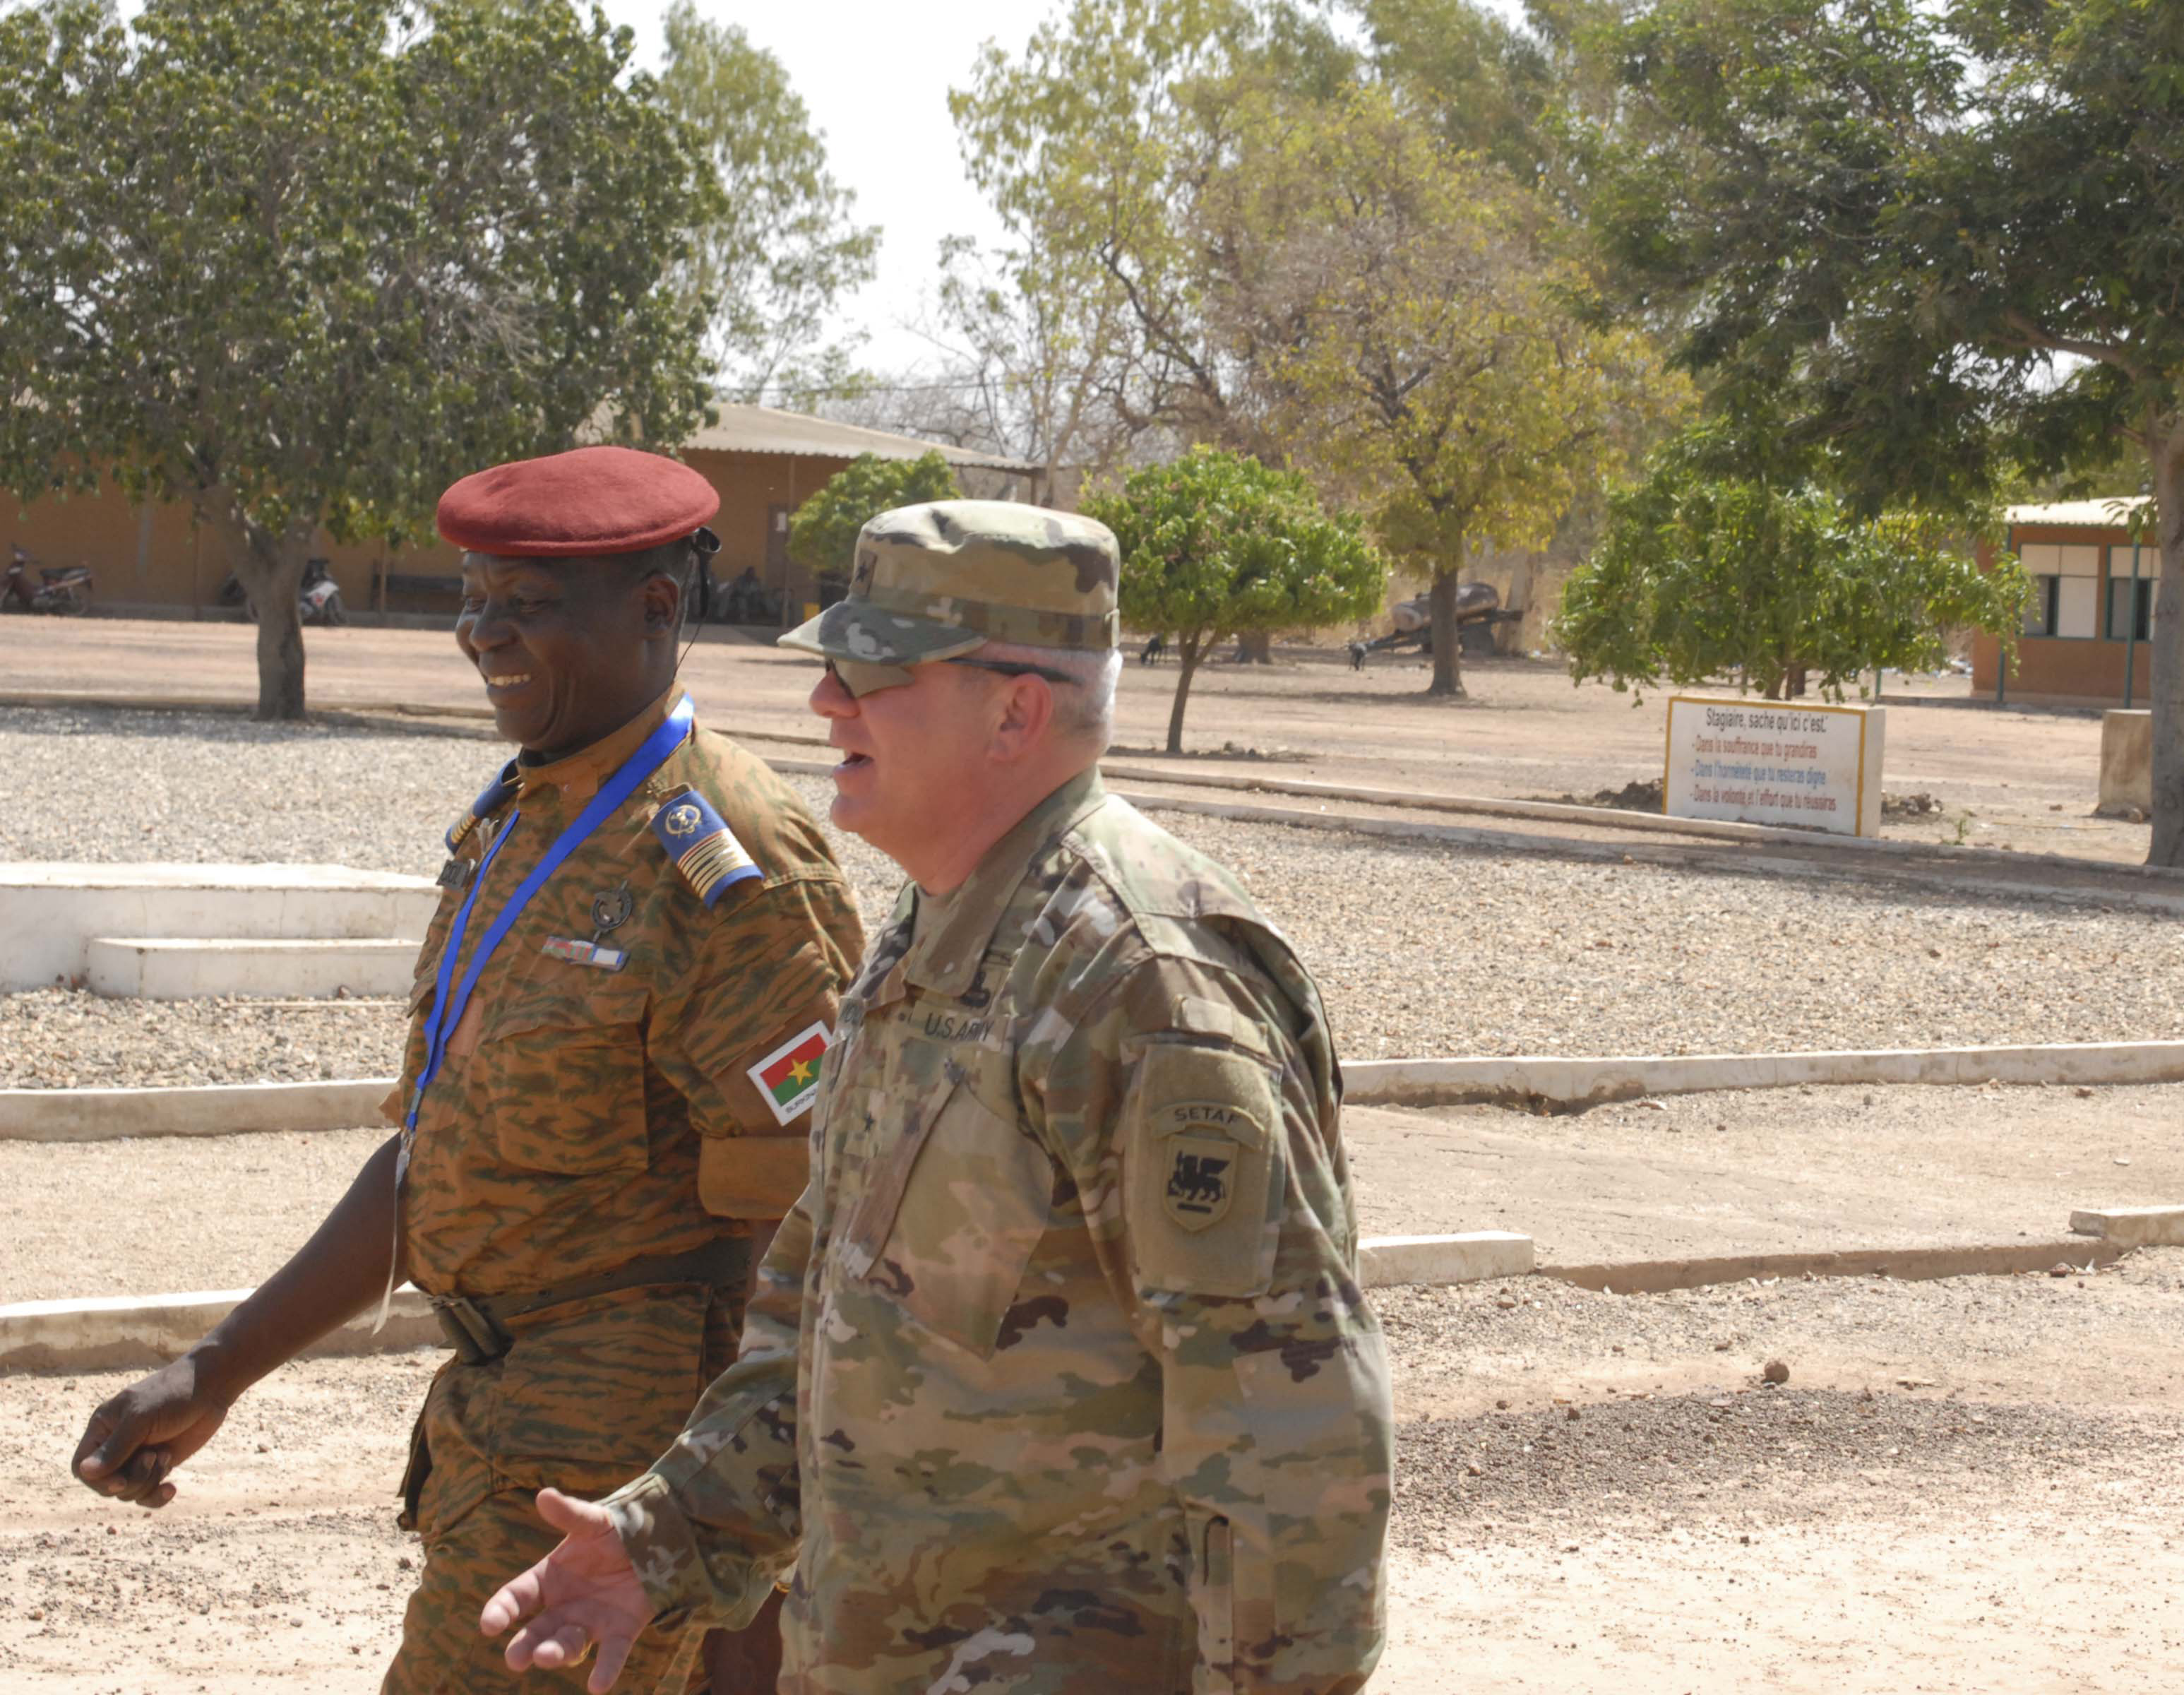 Brig. Gen. Kenneth H. Moore, Jr., U.S. Army Africa deputy commanding general and Col. Maj. Yaya Sere, chief planning officer and chief of operations for the General Staff of the Burkina Faso Armed Forces take a guided tour of the Western Accord 2016 training site at the BFAF Noncommissioned Officer Academy March 22. WA 16 is a two-week long exercise with regional African partners and their Western allies designed to strengthen partnerships and enhance capacity and capabilities to conduct joint multinational peacekeeping operations in West Africa. (U.S. Army Africa photo by Sgt. 1st Class Chris Bridson)